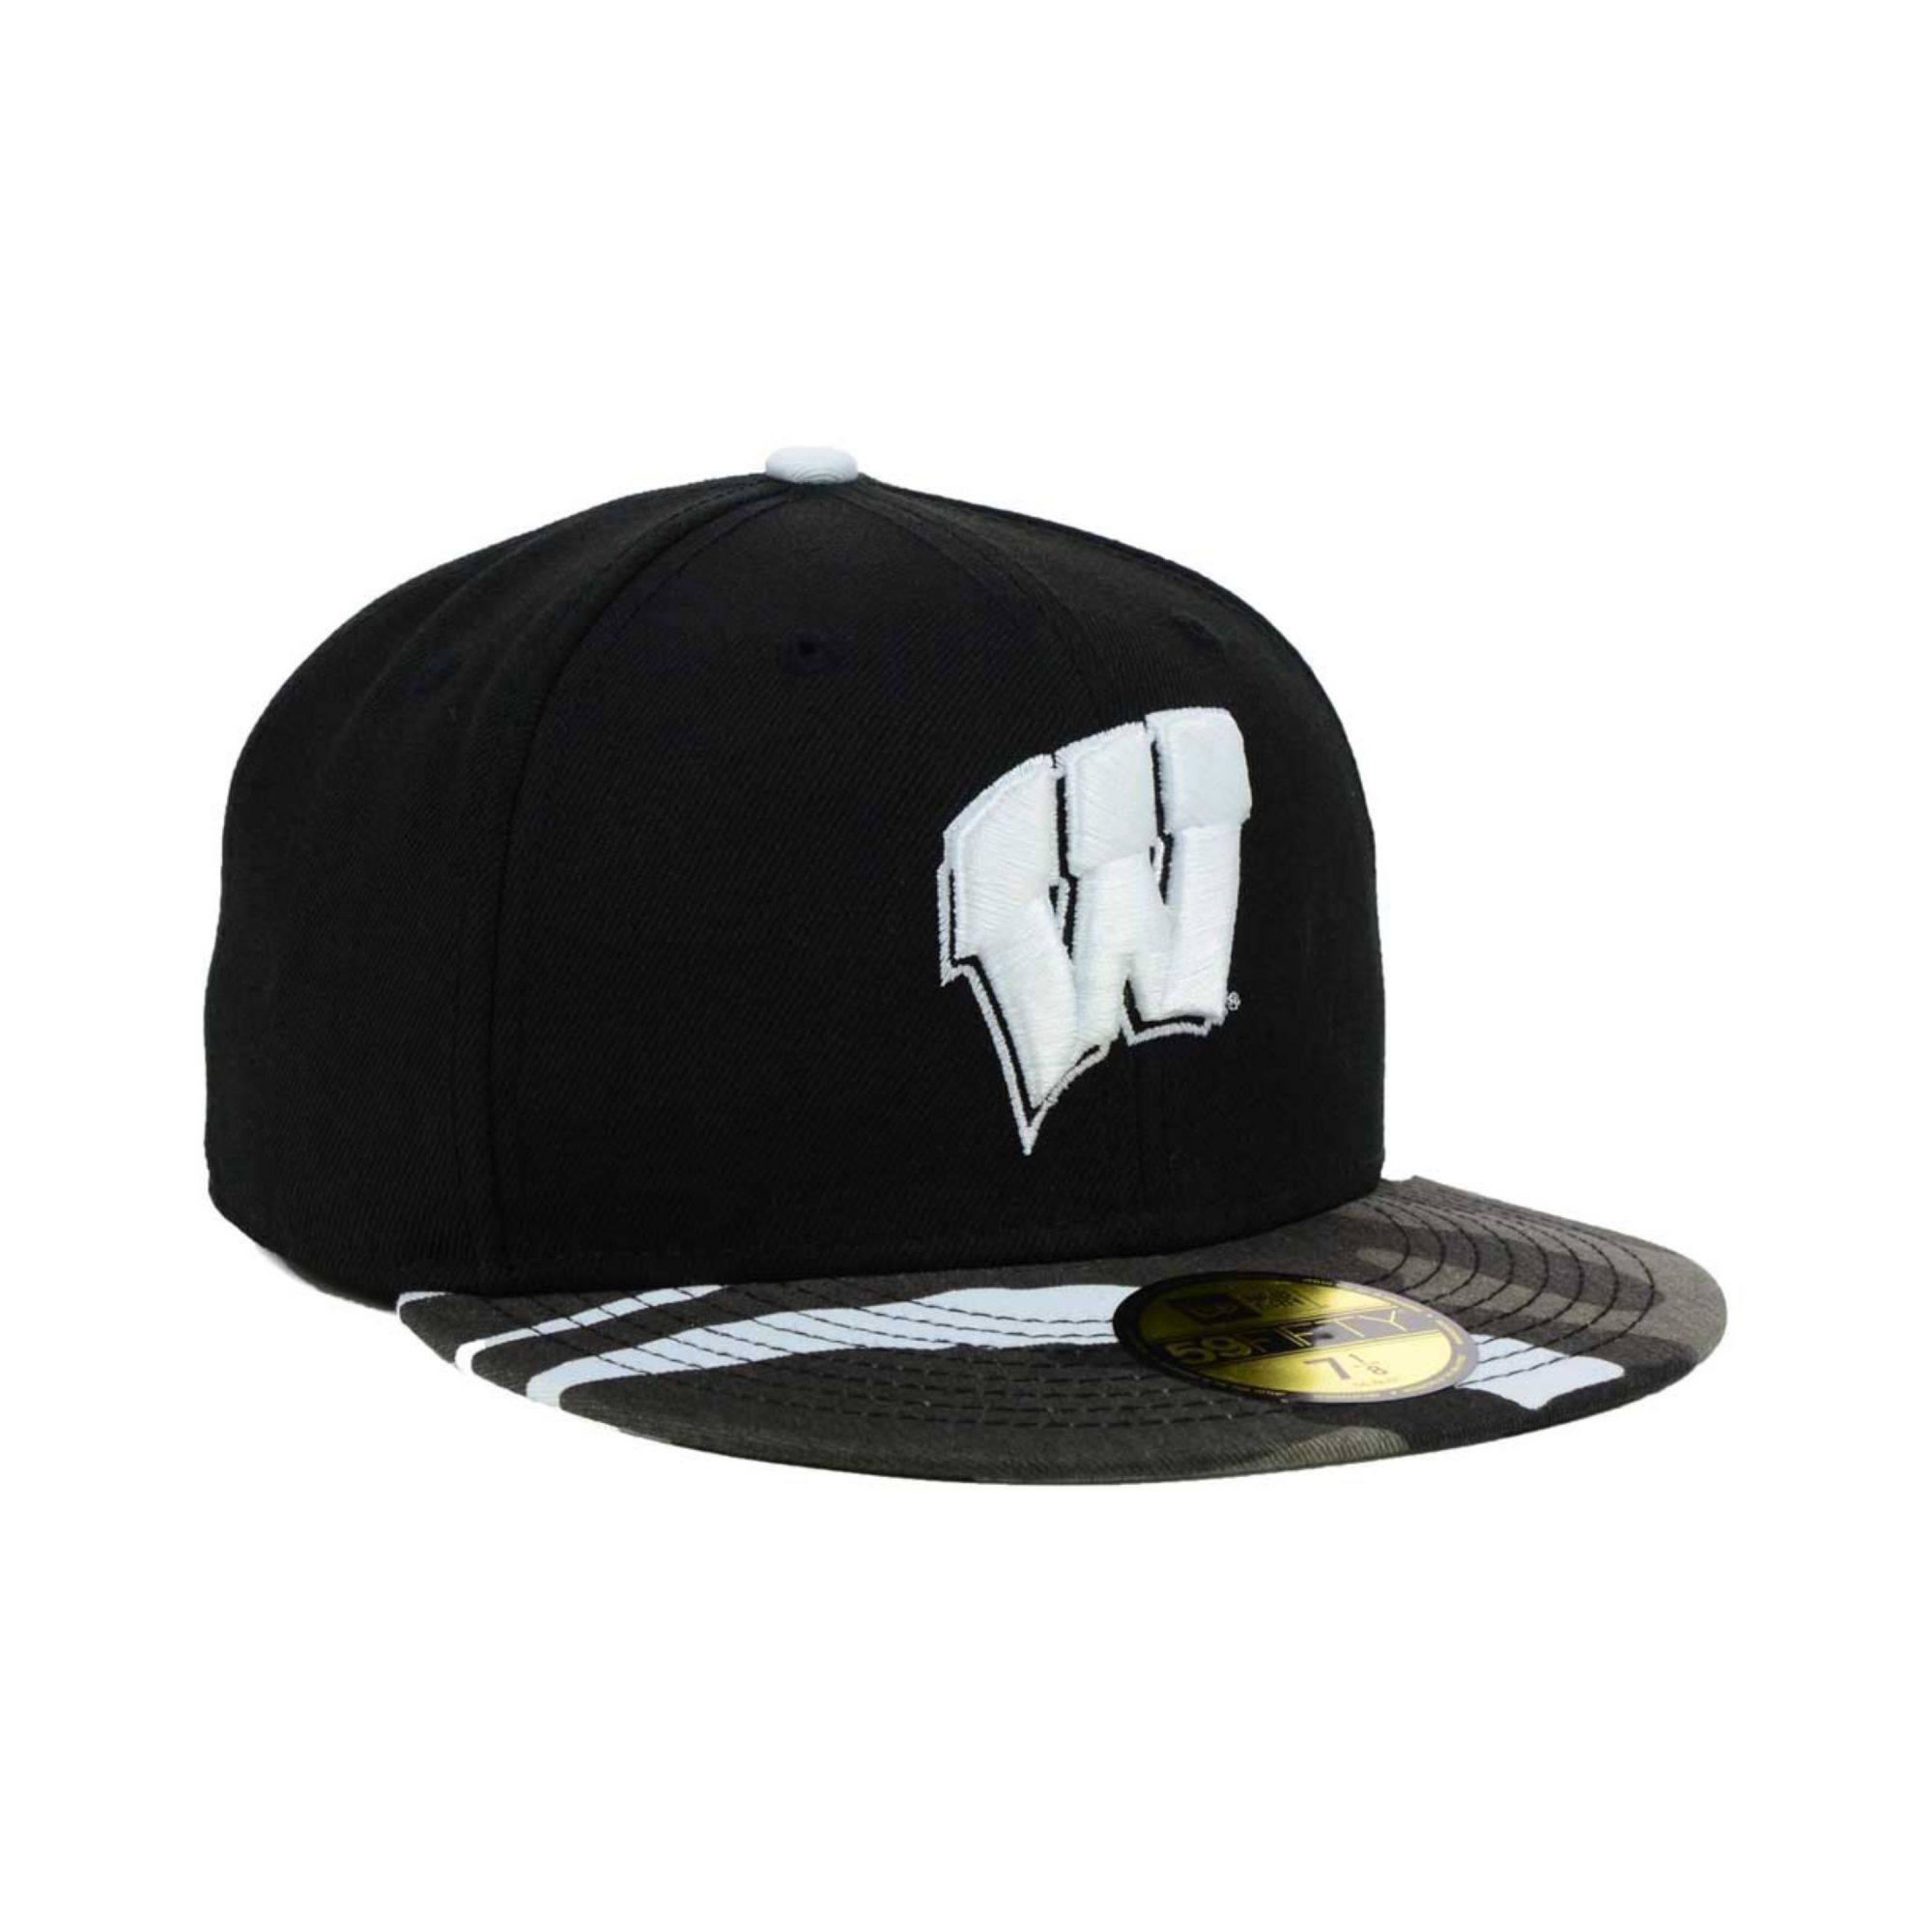 on sale a9870 00cd0 ... new zealand lyst ktz wisconsin badgers urban camo 59fifty cap in black  for men a3f92 9a1c3 ...